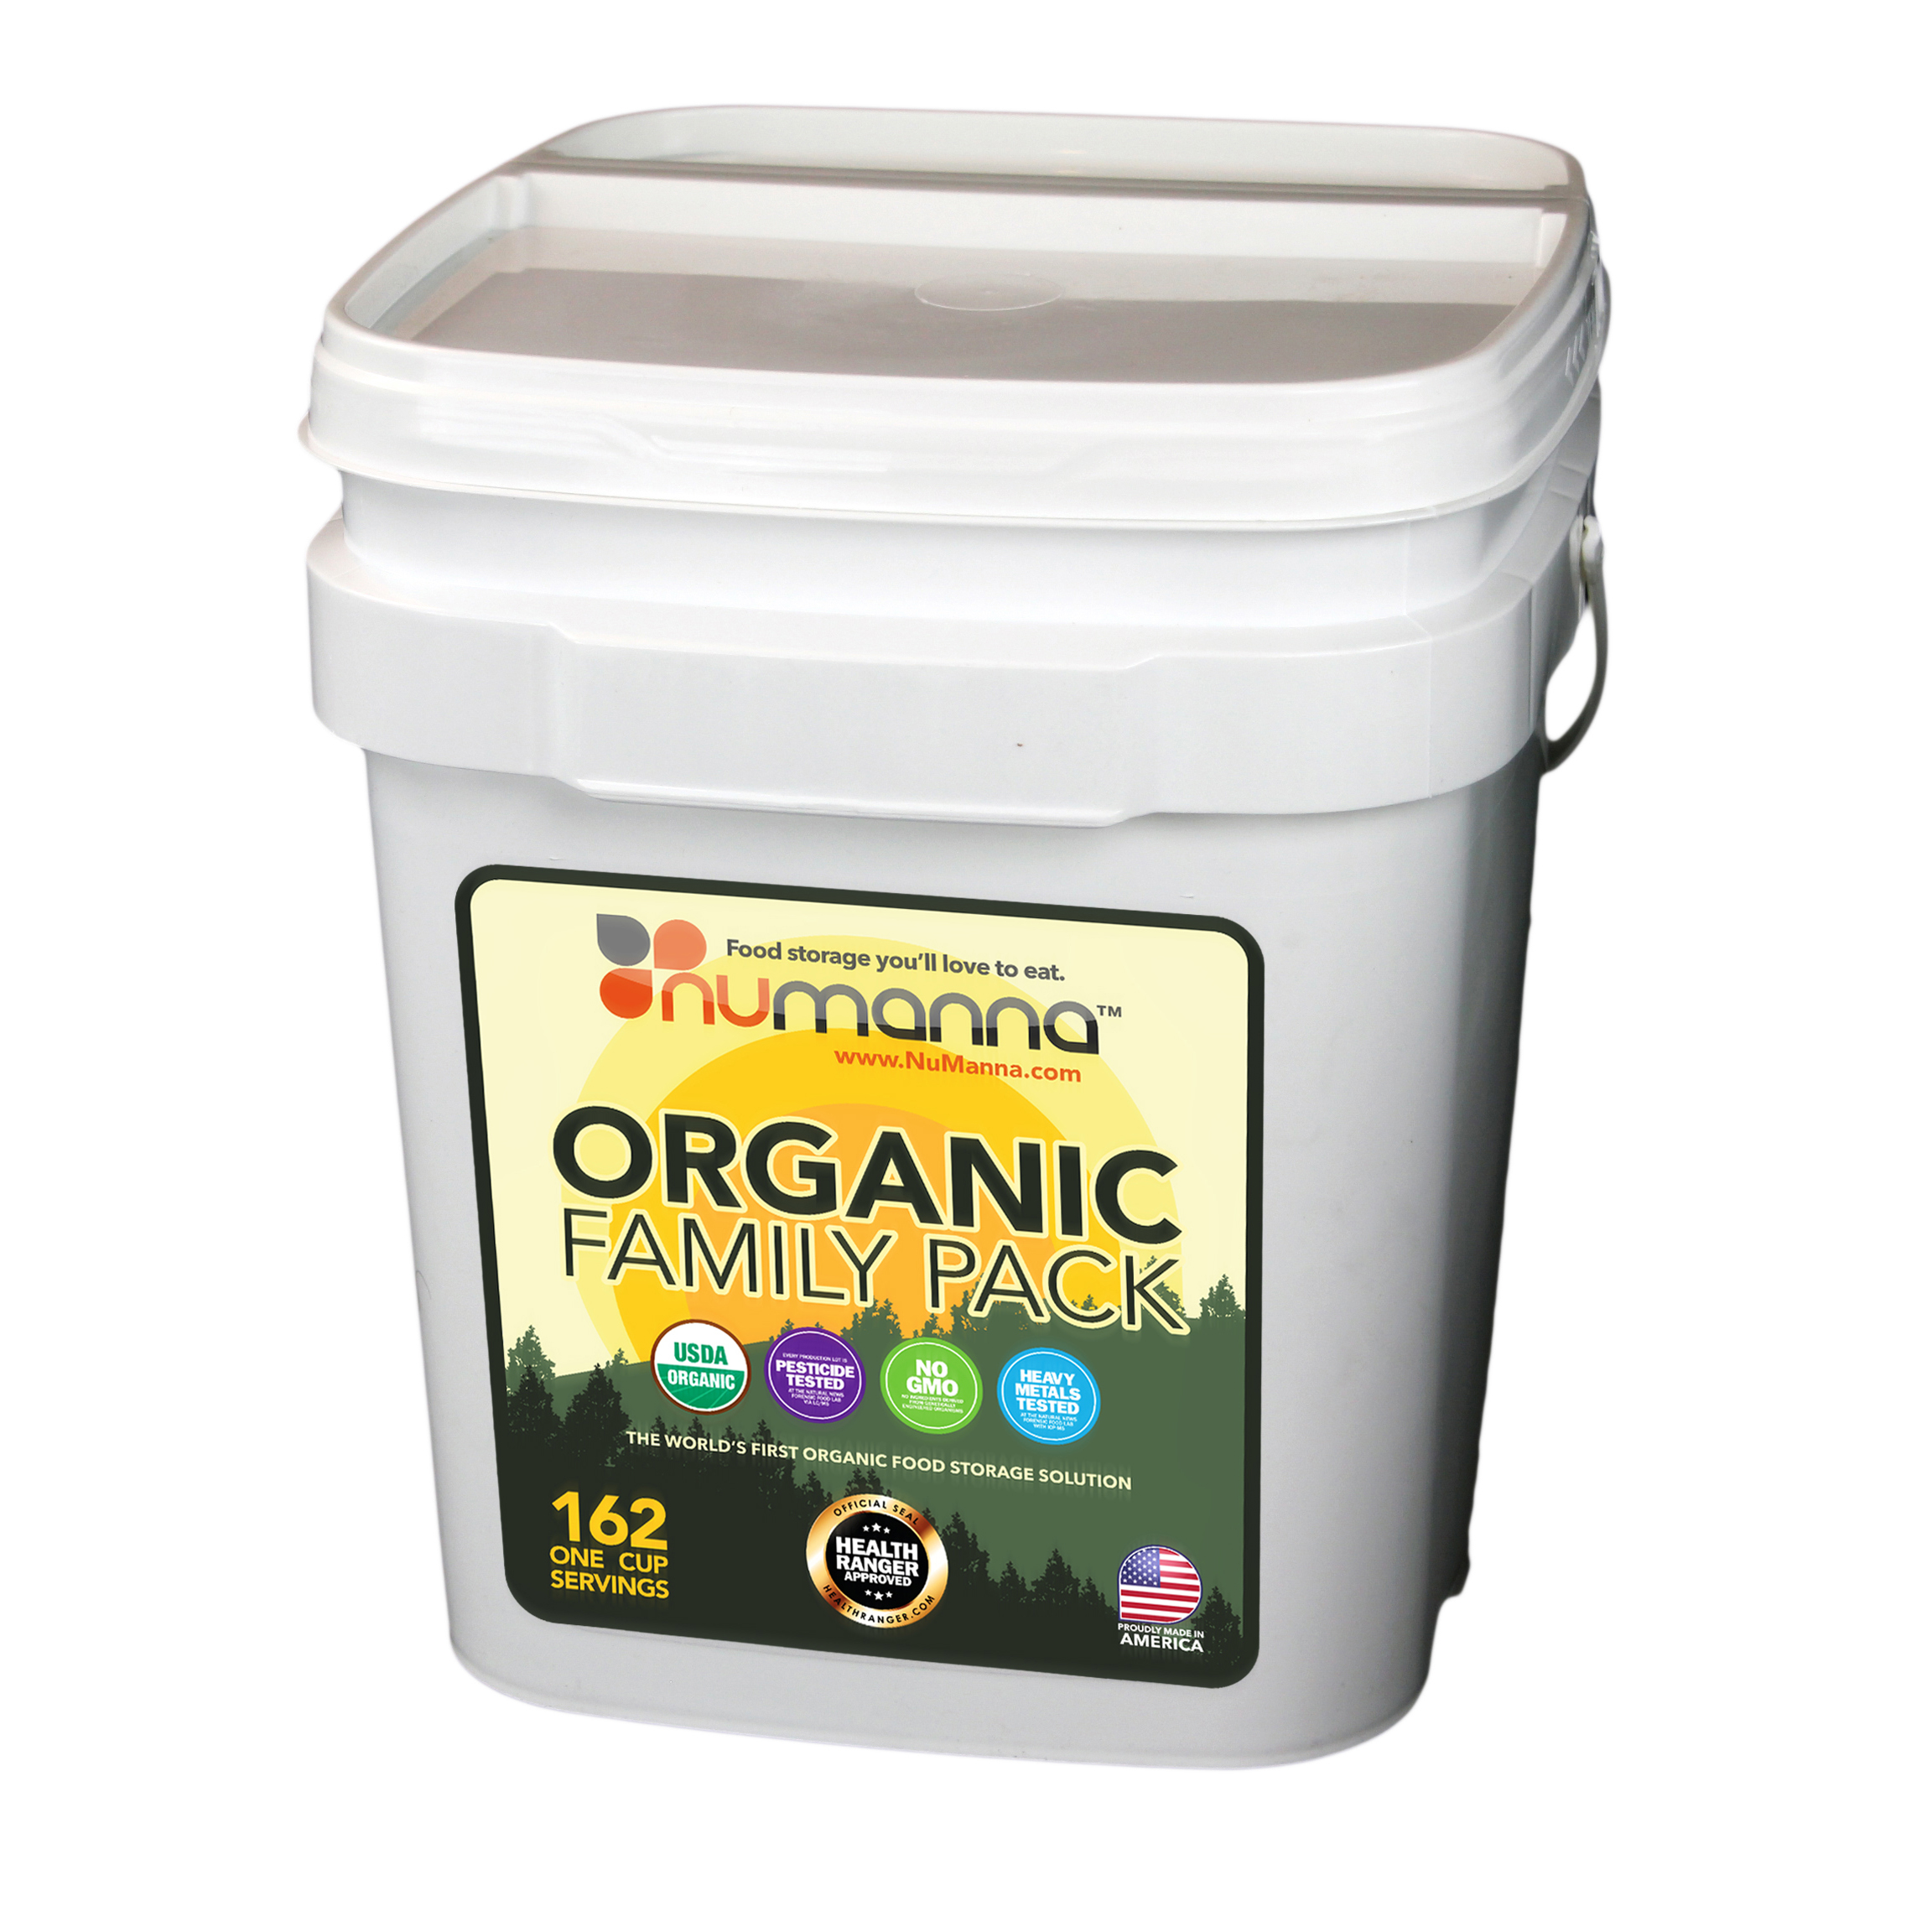 NuManna USDA ORGANIC Family Pack 162 Servings, Emergency Survival Food Storage Kit, Meals Included Have 25 Year Shelf Life , GMO-Free